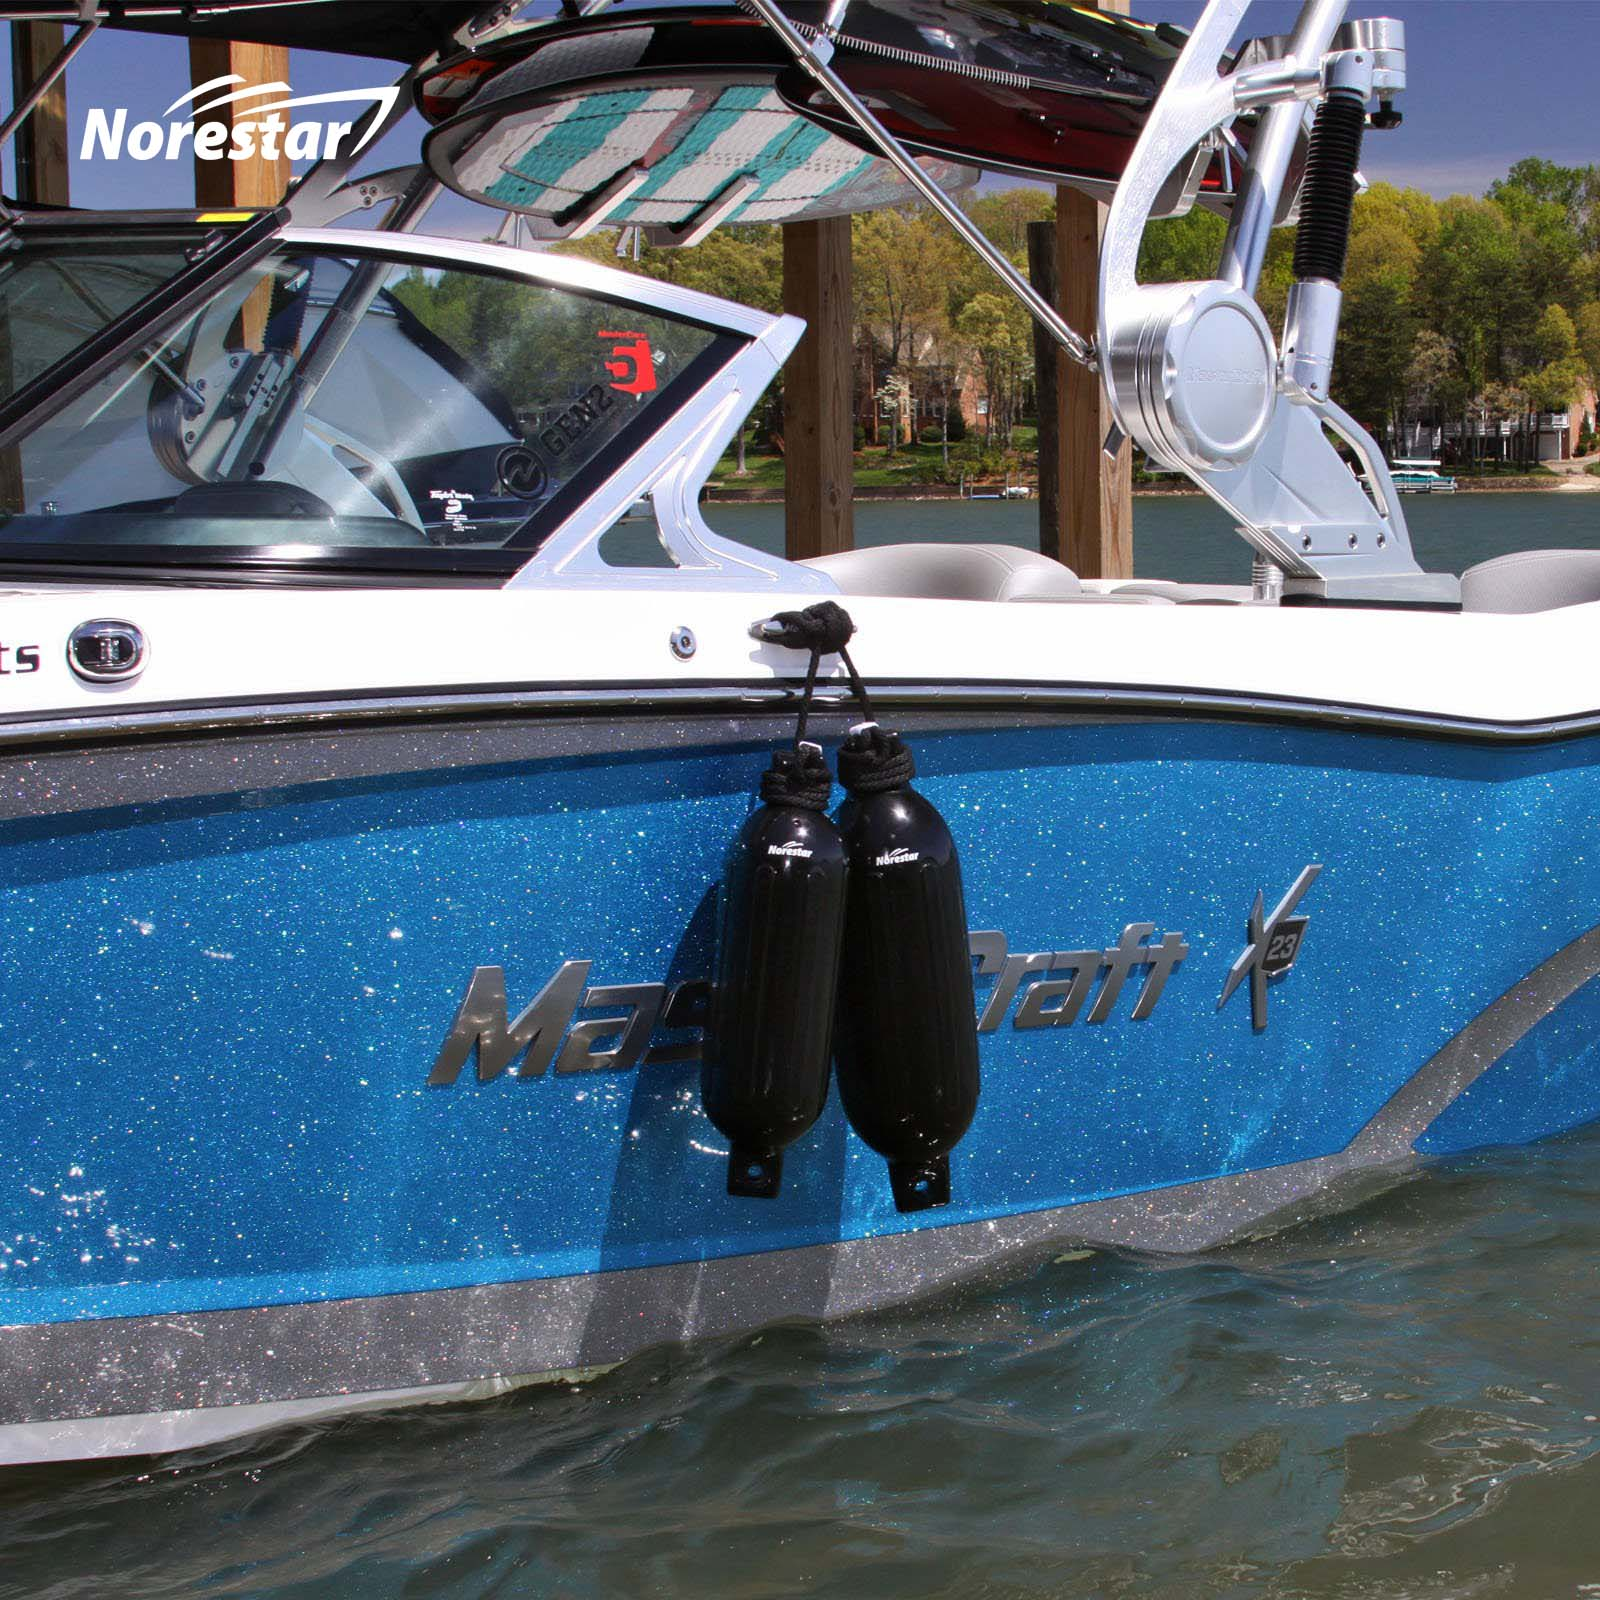 Norestar Ribbed Fender On Boat